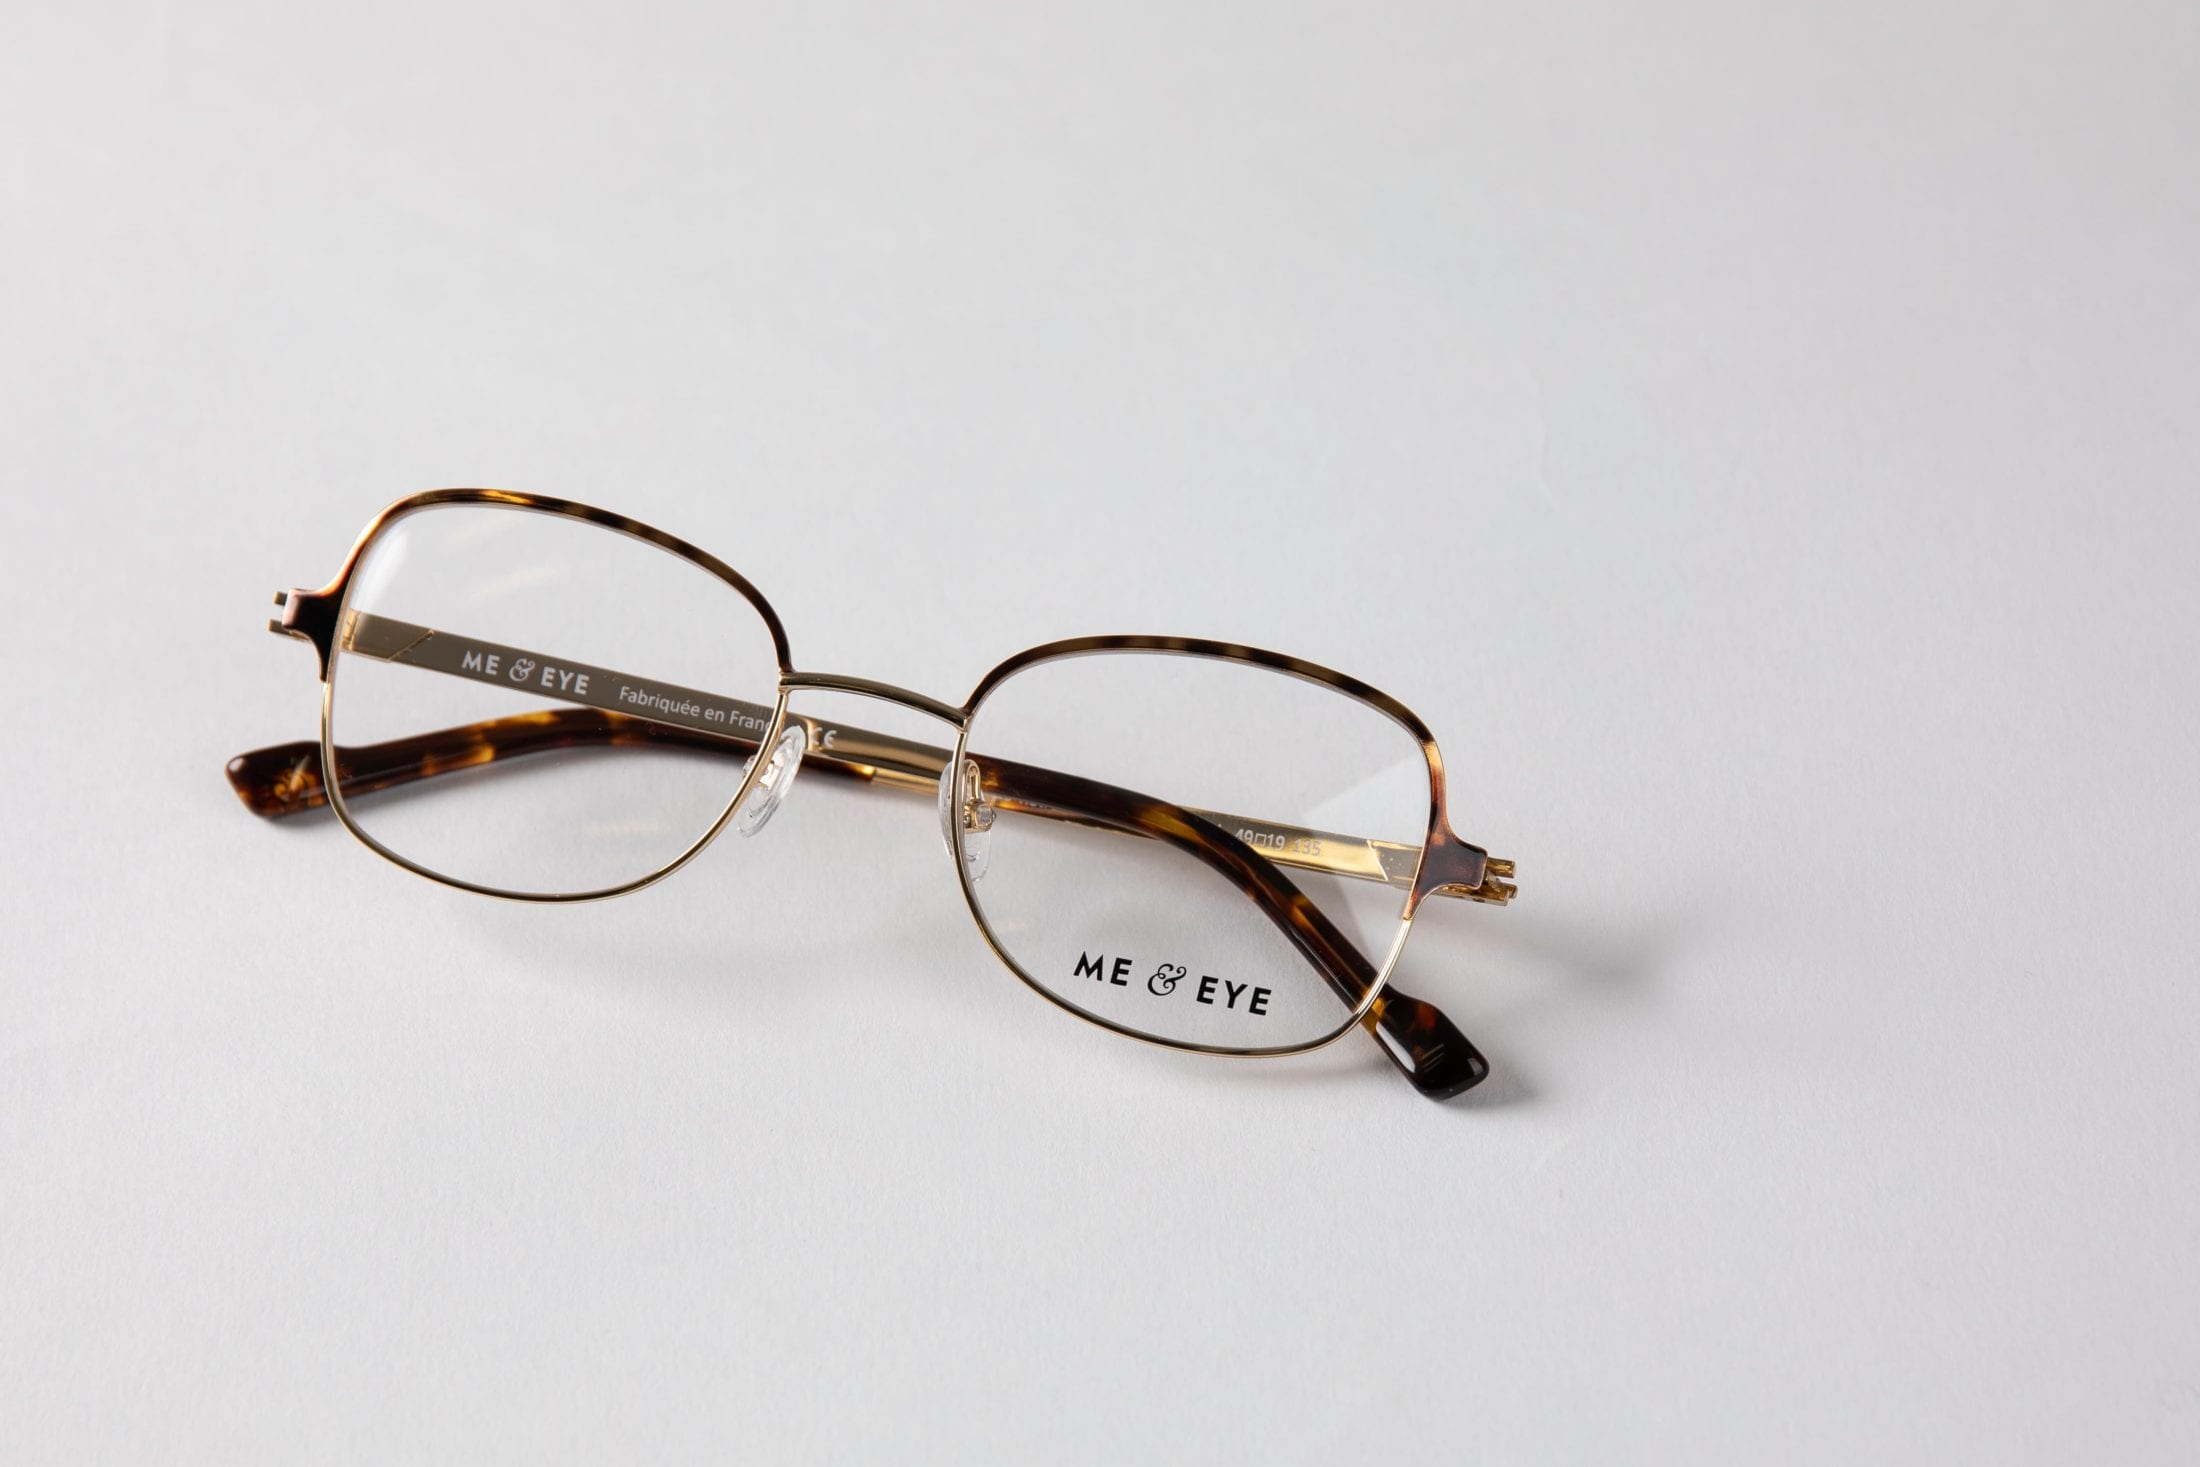 Monture - lunettes Me & Eye collection Rétro et Design 2020 modele femme rectangle adouci chaud